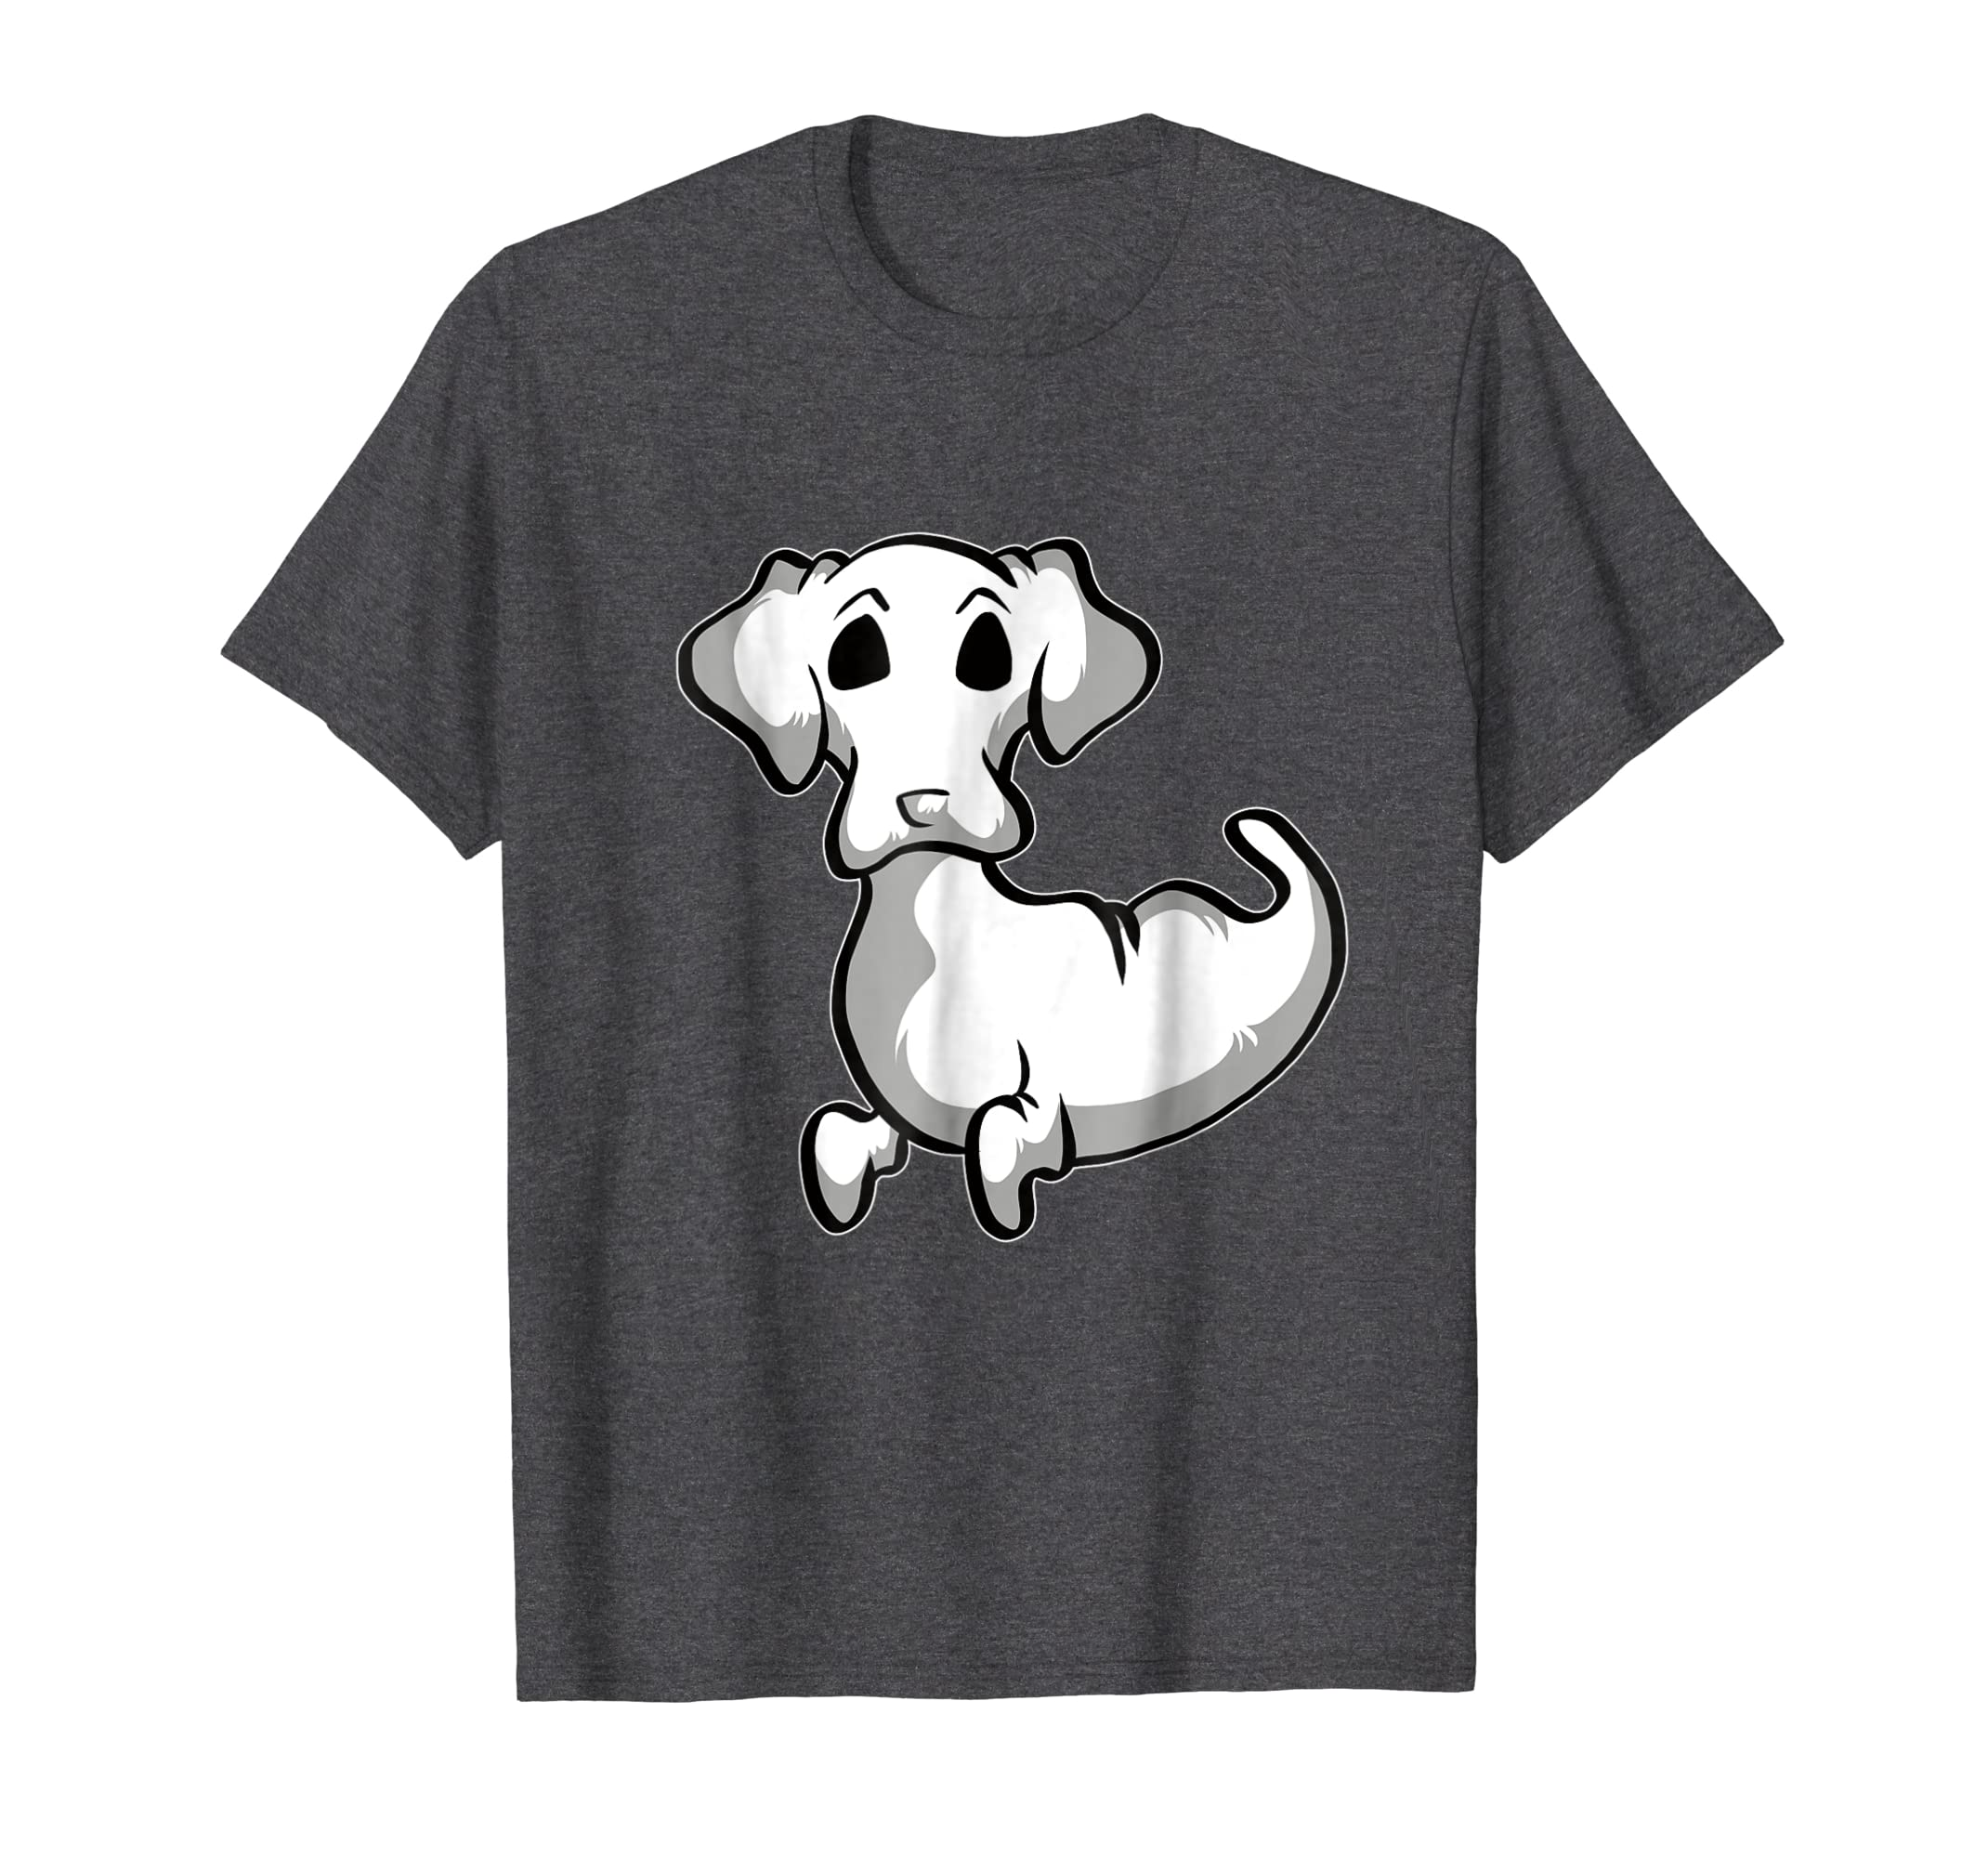 Funny Dachshund Ghost T Shirt Cute Ghost Halloween Shirt